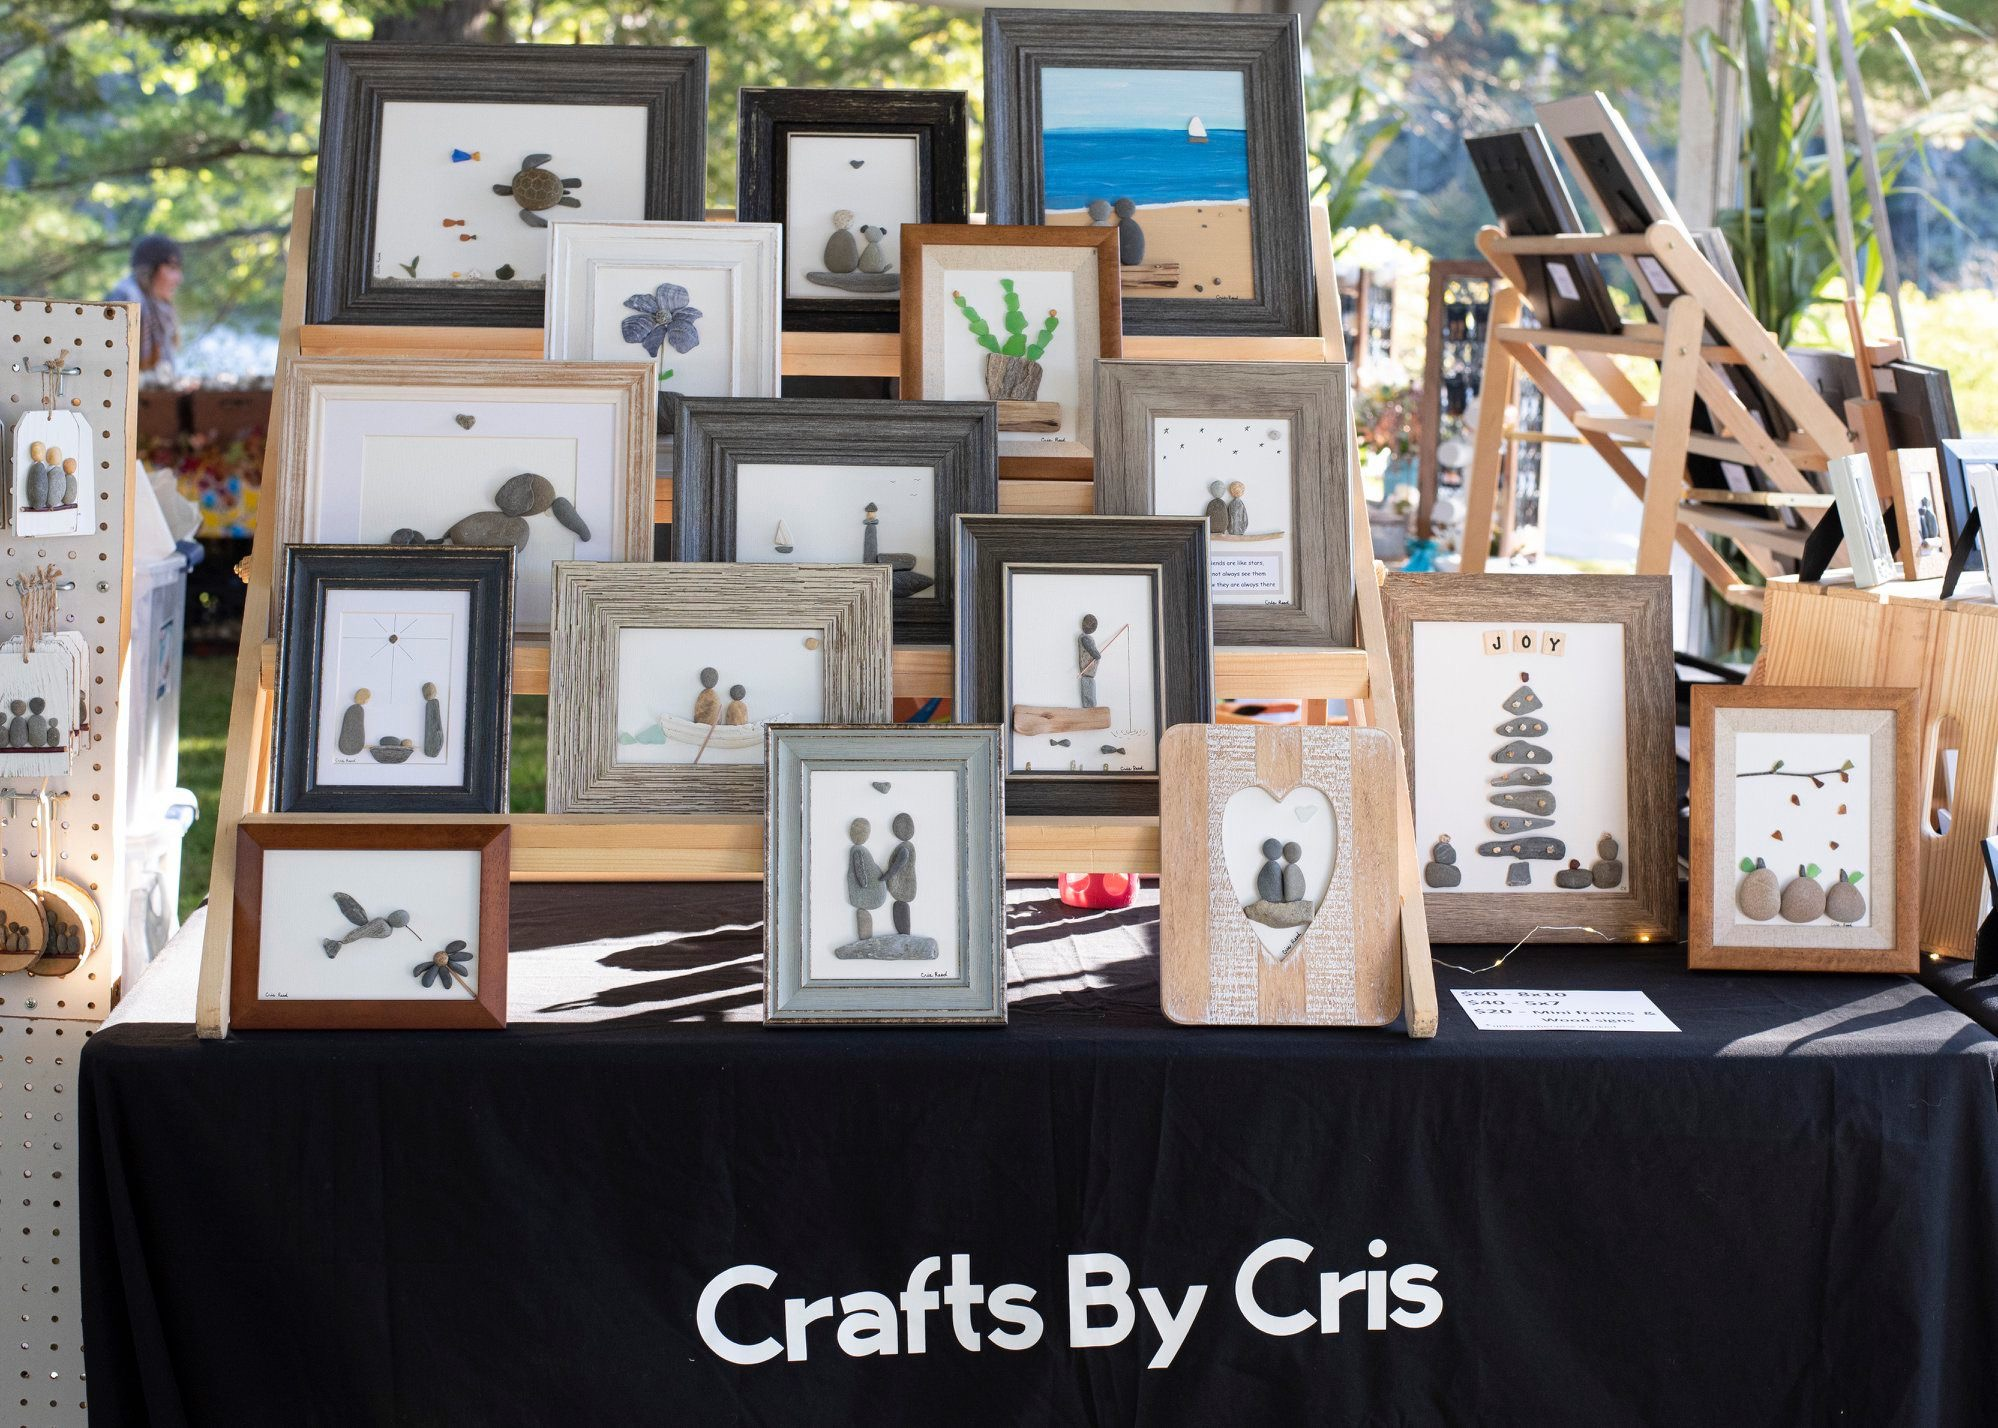 Crafts by Cris, LLC